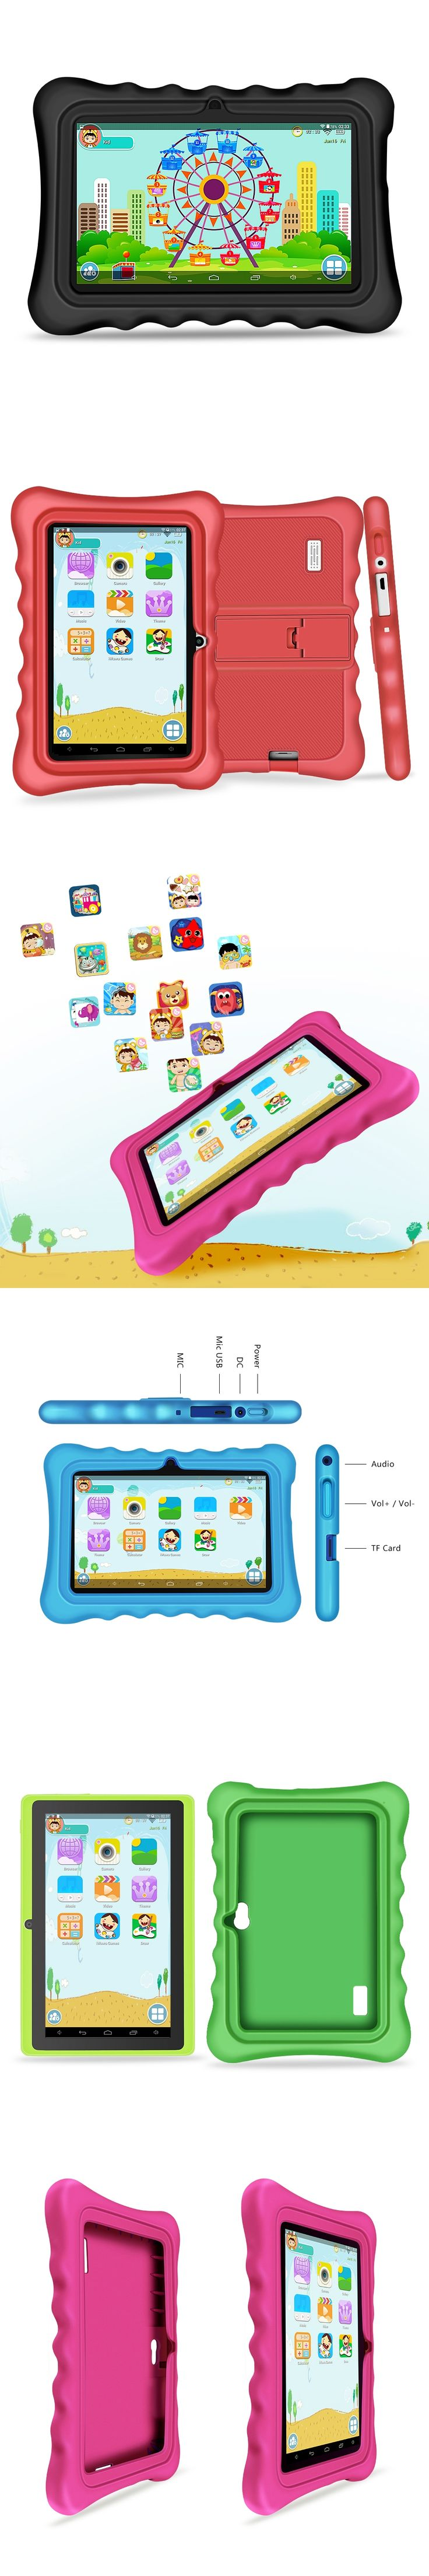 Yuntab 7 inch 5 color Quad Core touch screen 1024*600 Tablet PC load Iwawa kid software ,3D-Game bluetooth Kids Tablet